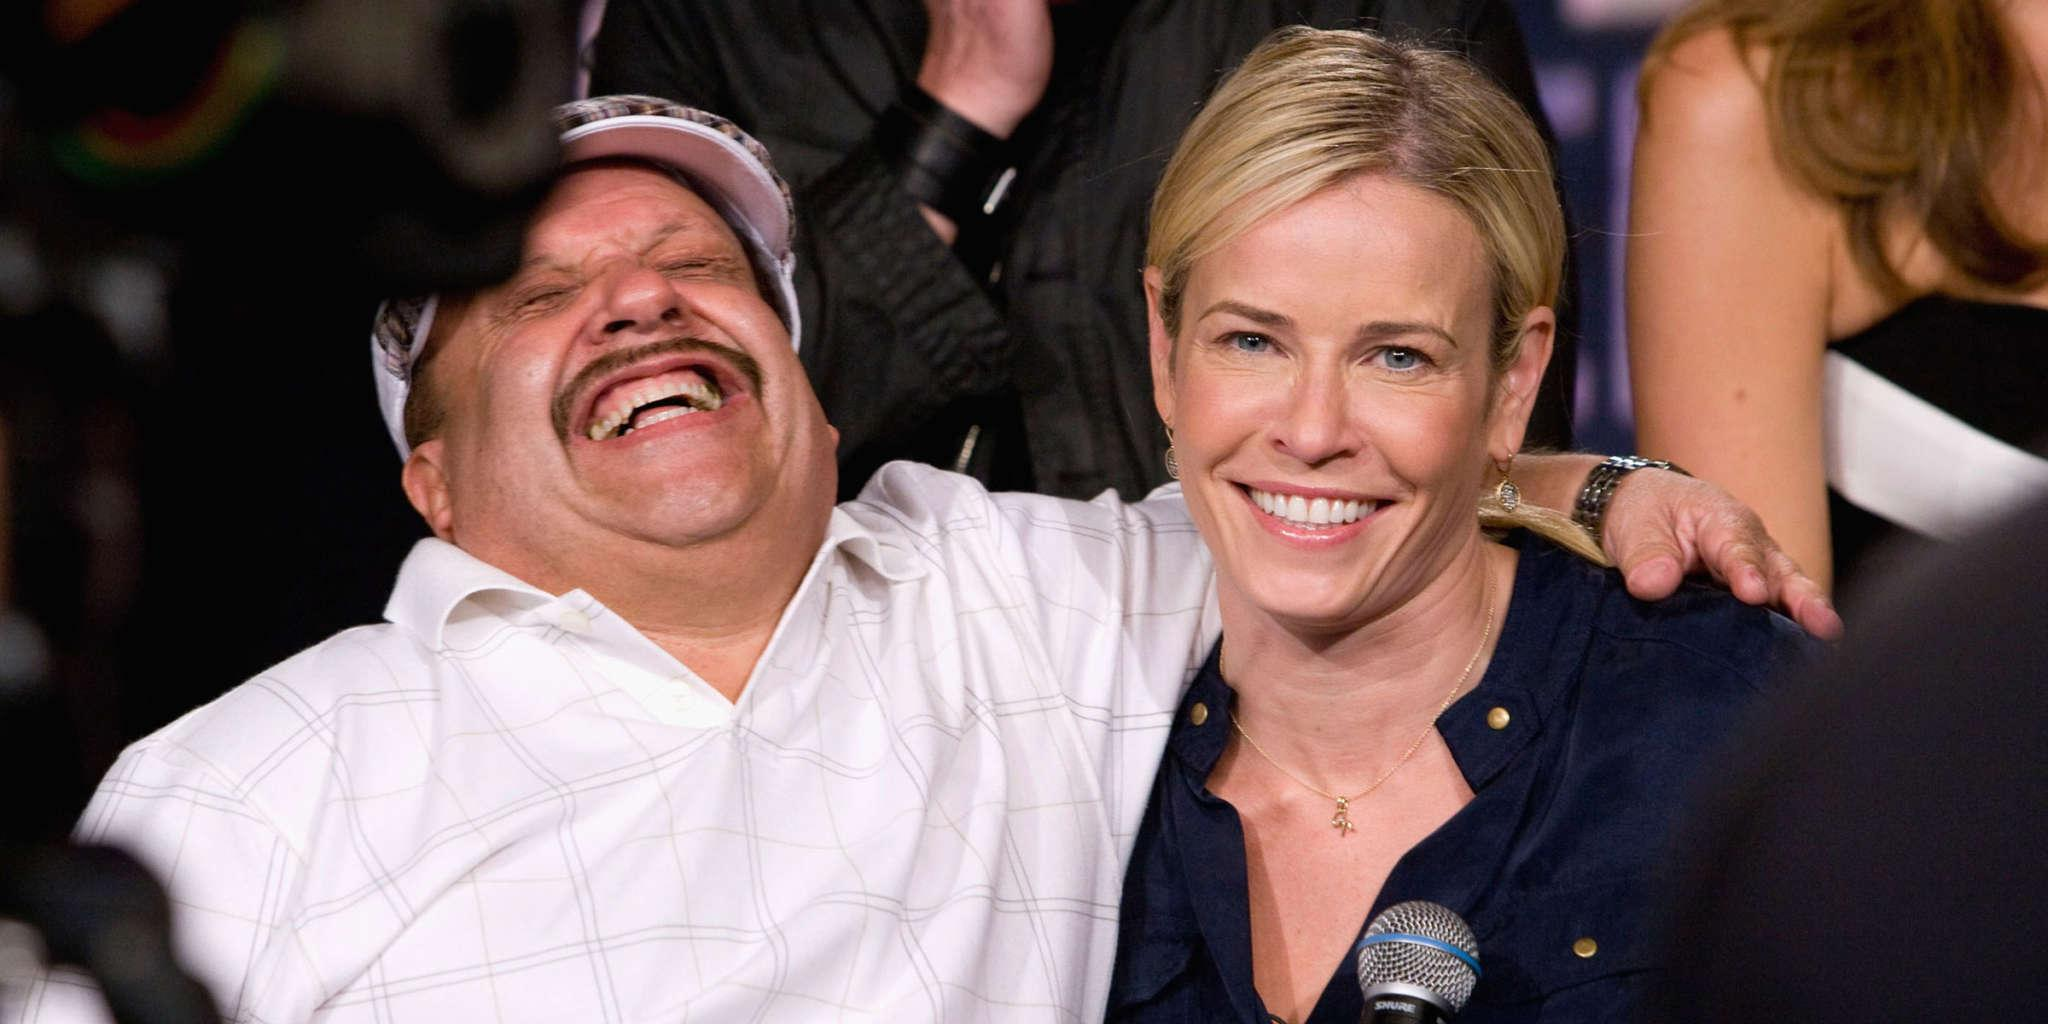 Chelsea Lately Legend Chuy Bravo Passes Away Suddenly In Mexico City Just Days After Celebrating Birthday -- Chelsea Handler Reacts